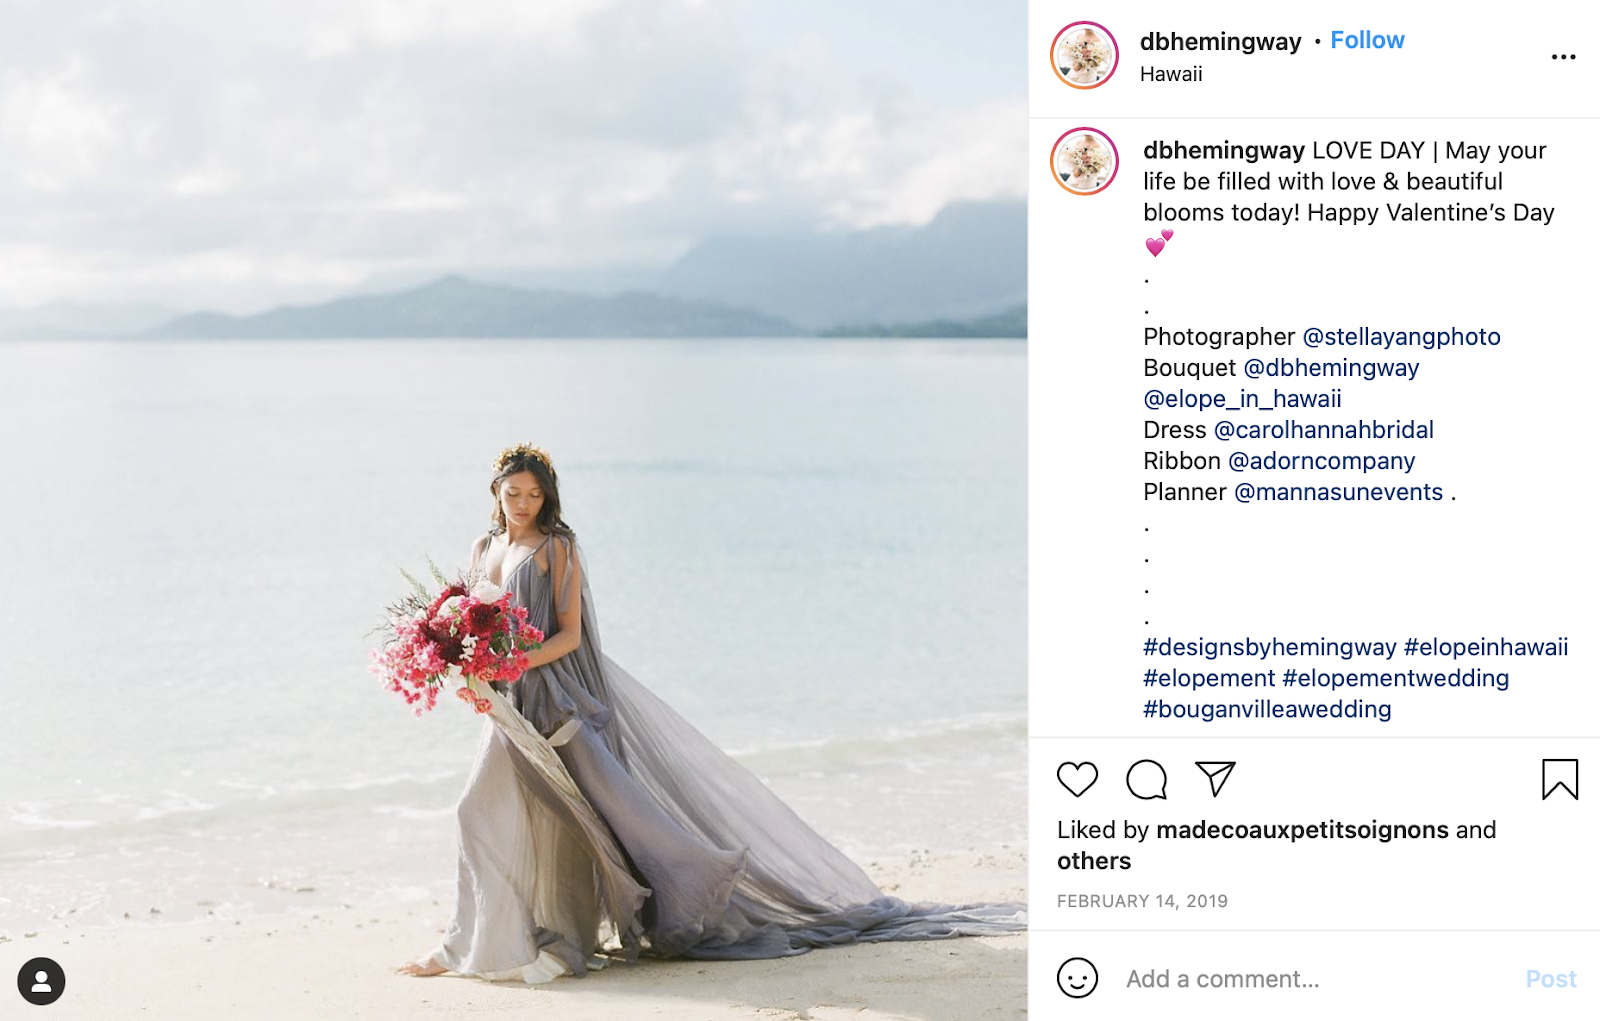 bridesmaid on beach with gray dress and raspberry flowers